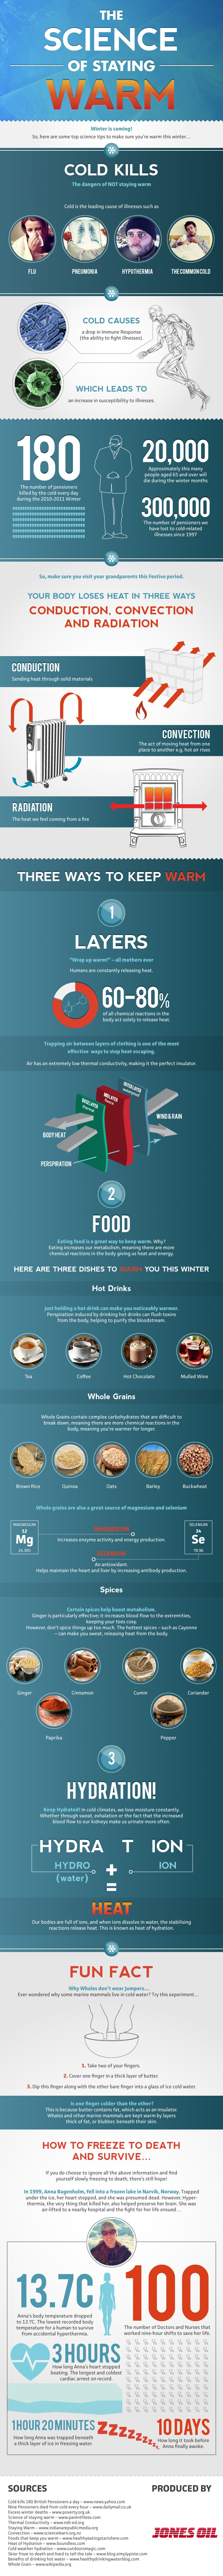 06 the-science-of-staying-warm-infographic